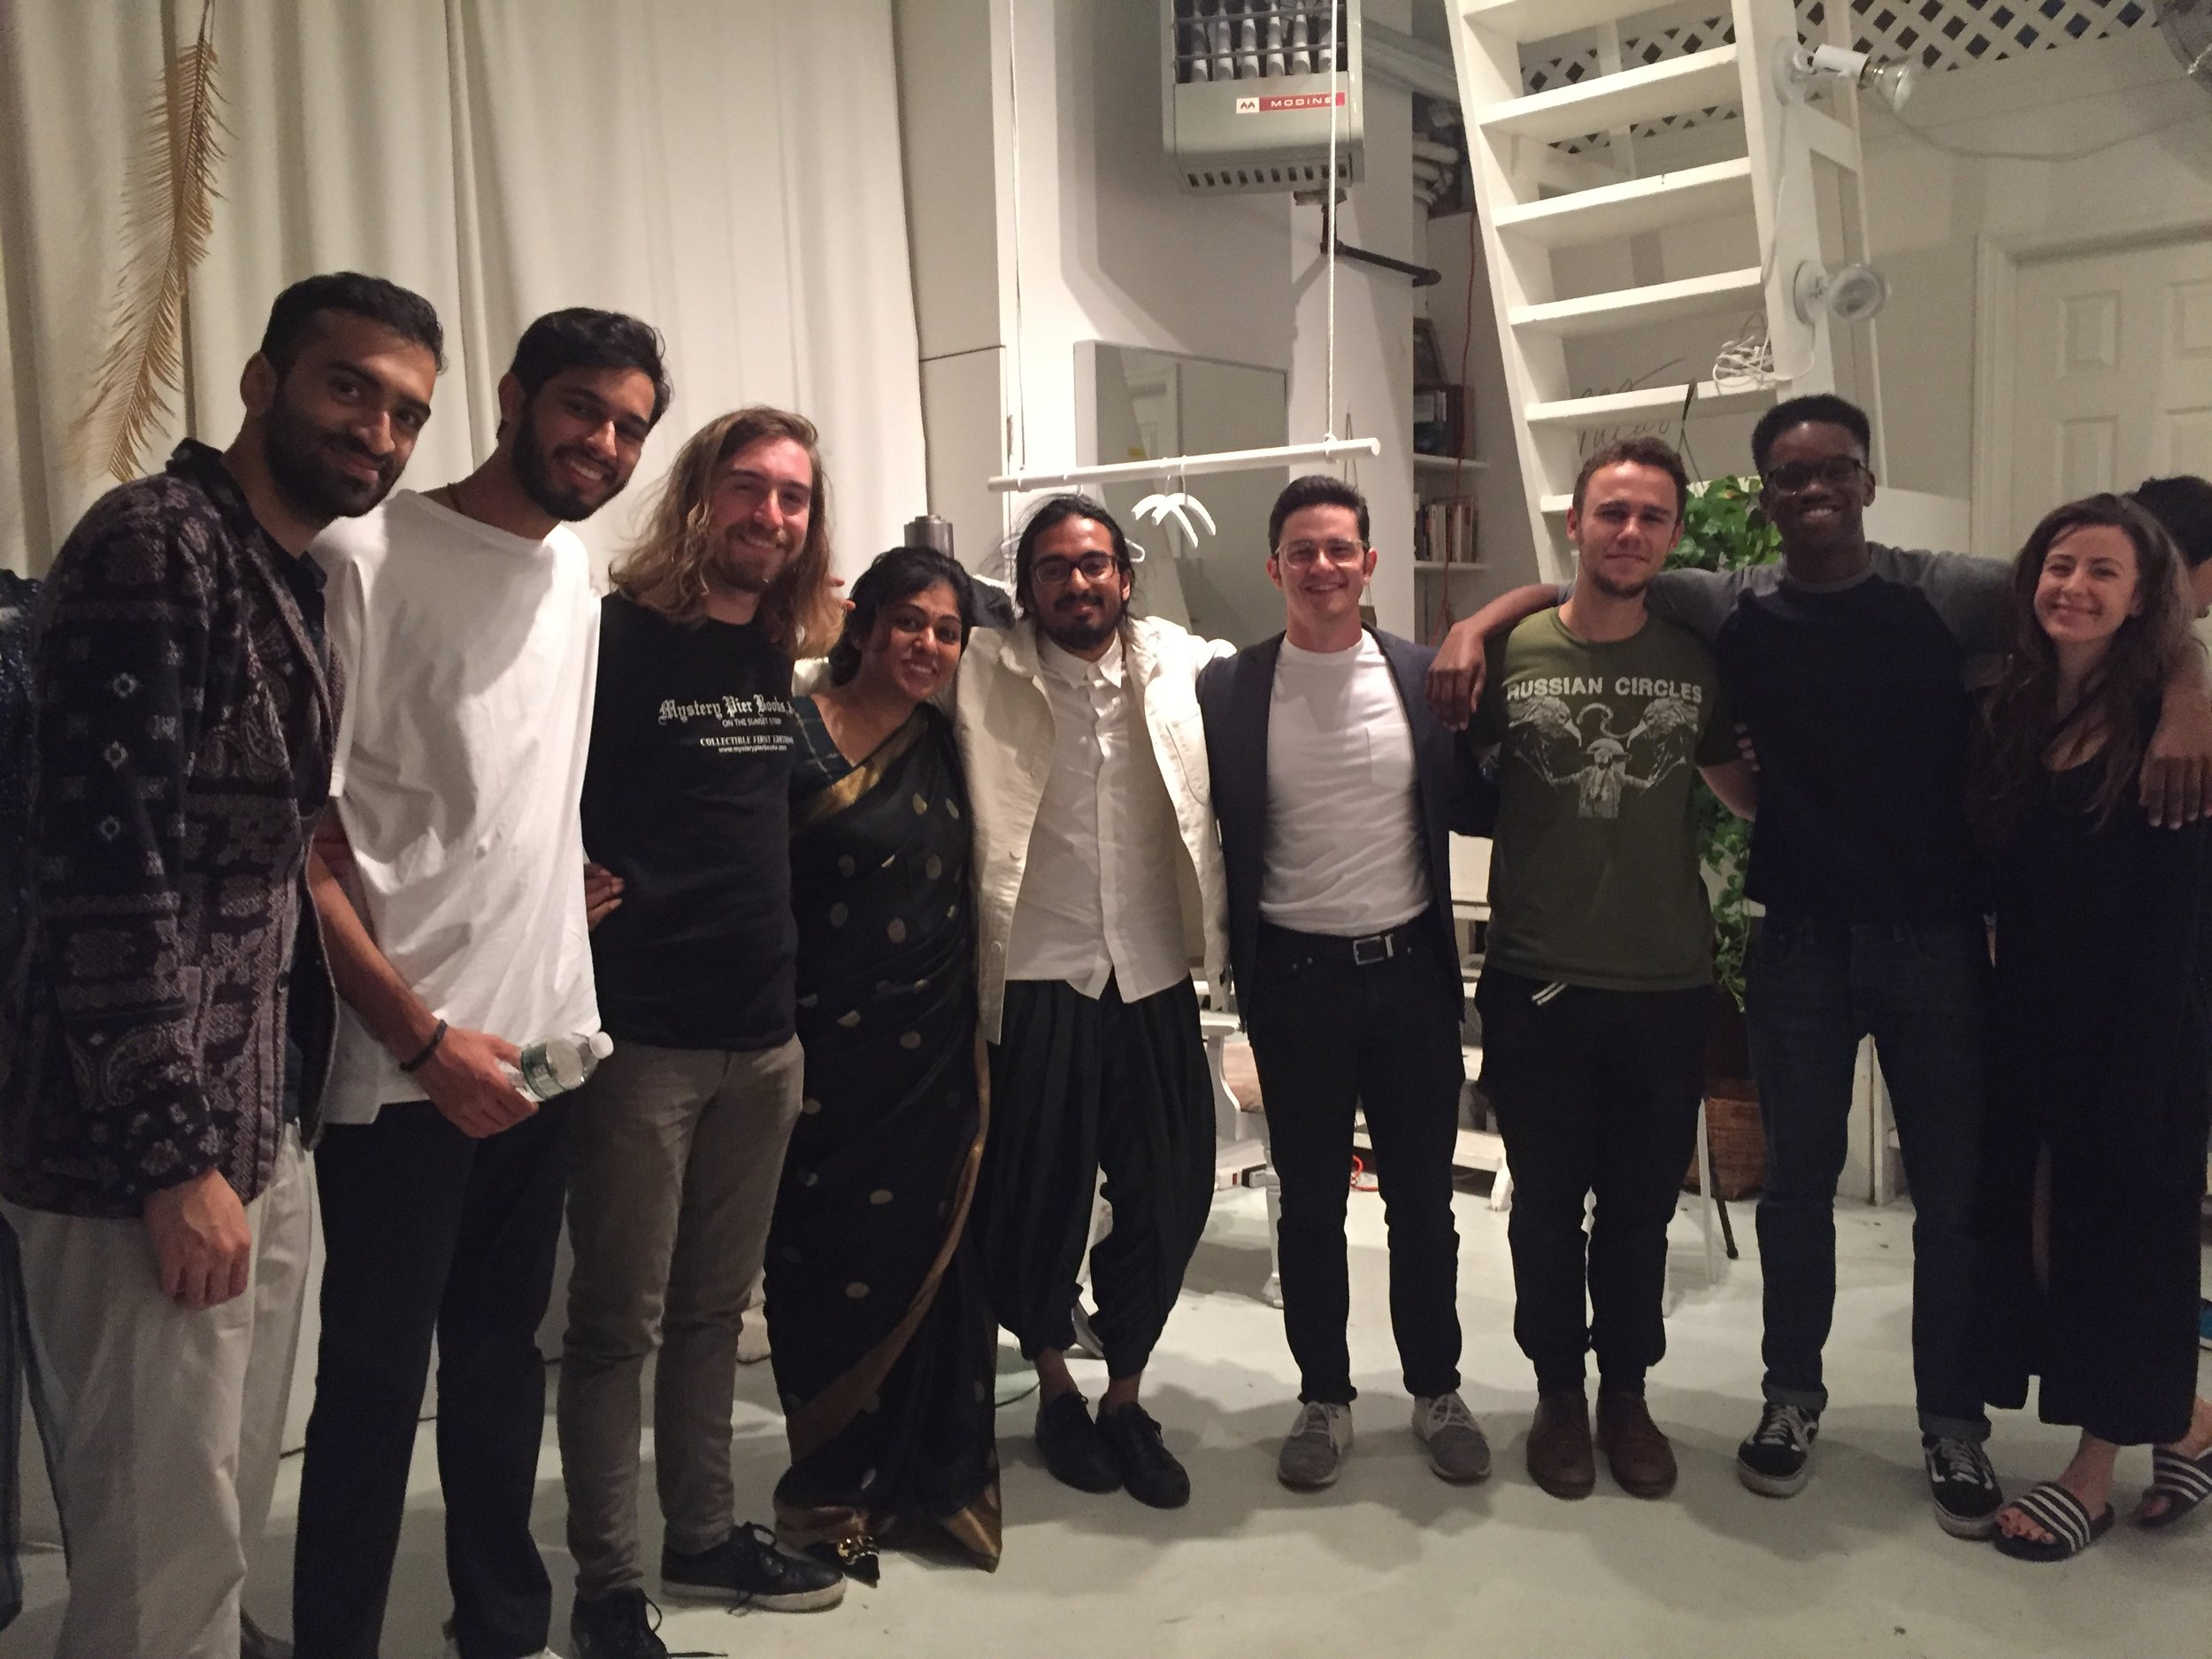 SG and BG with friends who helped us make this event happen - so thankful for each and every one of them! Jivan Gandhi, Archit Batlaw, Joe Bowman, BG, SG, Gabriel Nathan, James Kogan, LucasLucas.